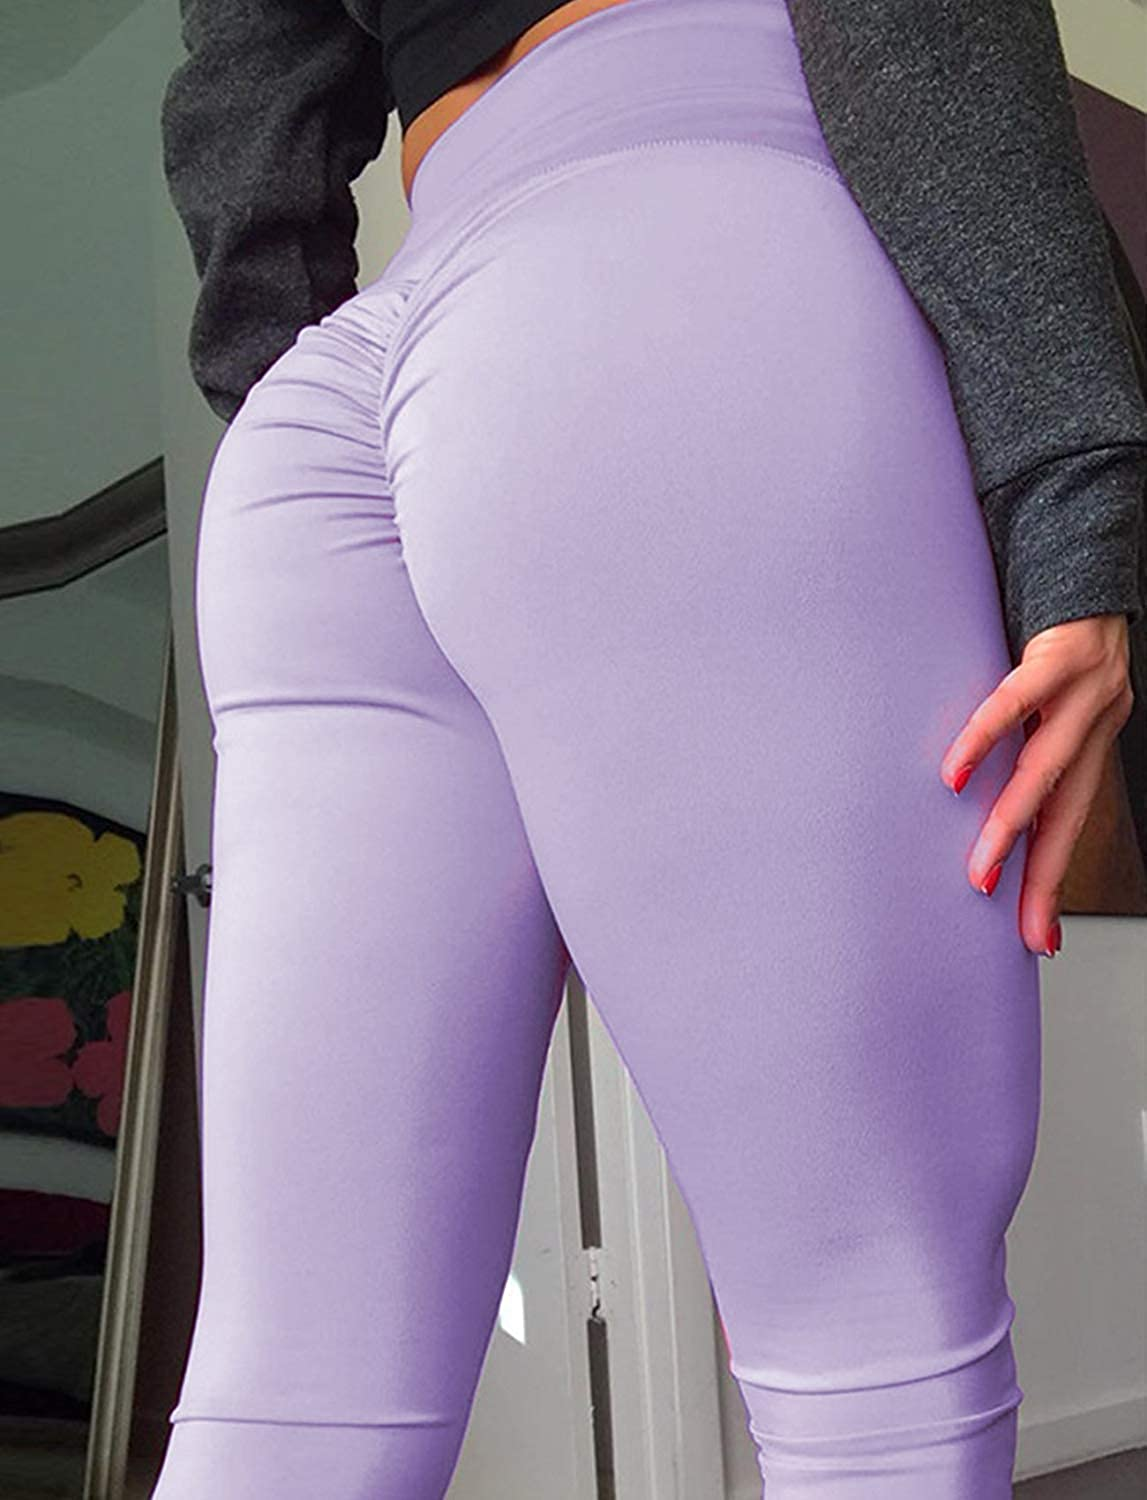 Memoryee Scrunch da donna Butt Yoga Pants Leggings Vita alta Allenamento Sport Fitness Palestra Calzamaglia Push Up